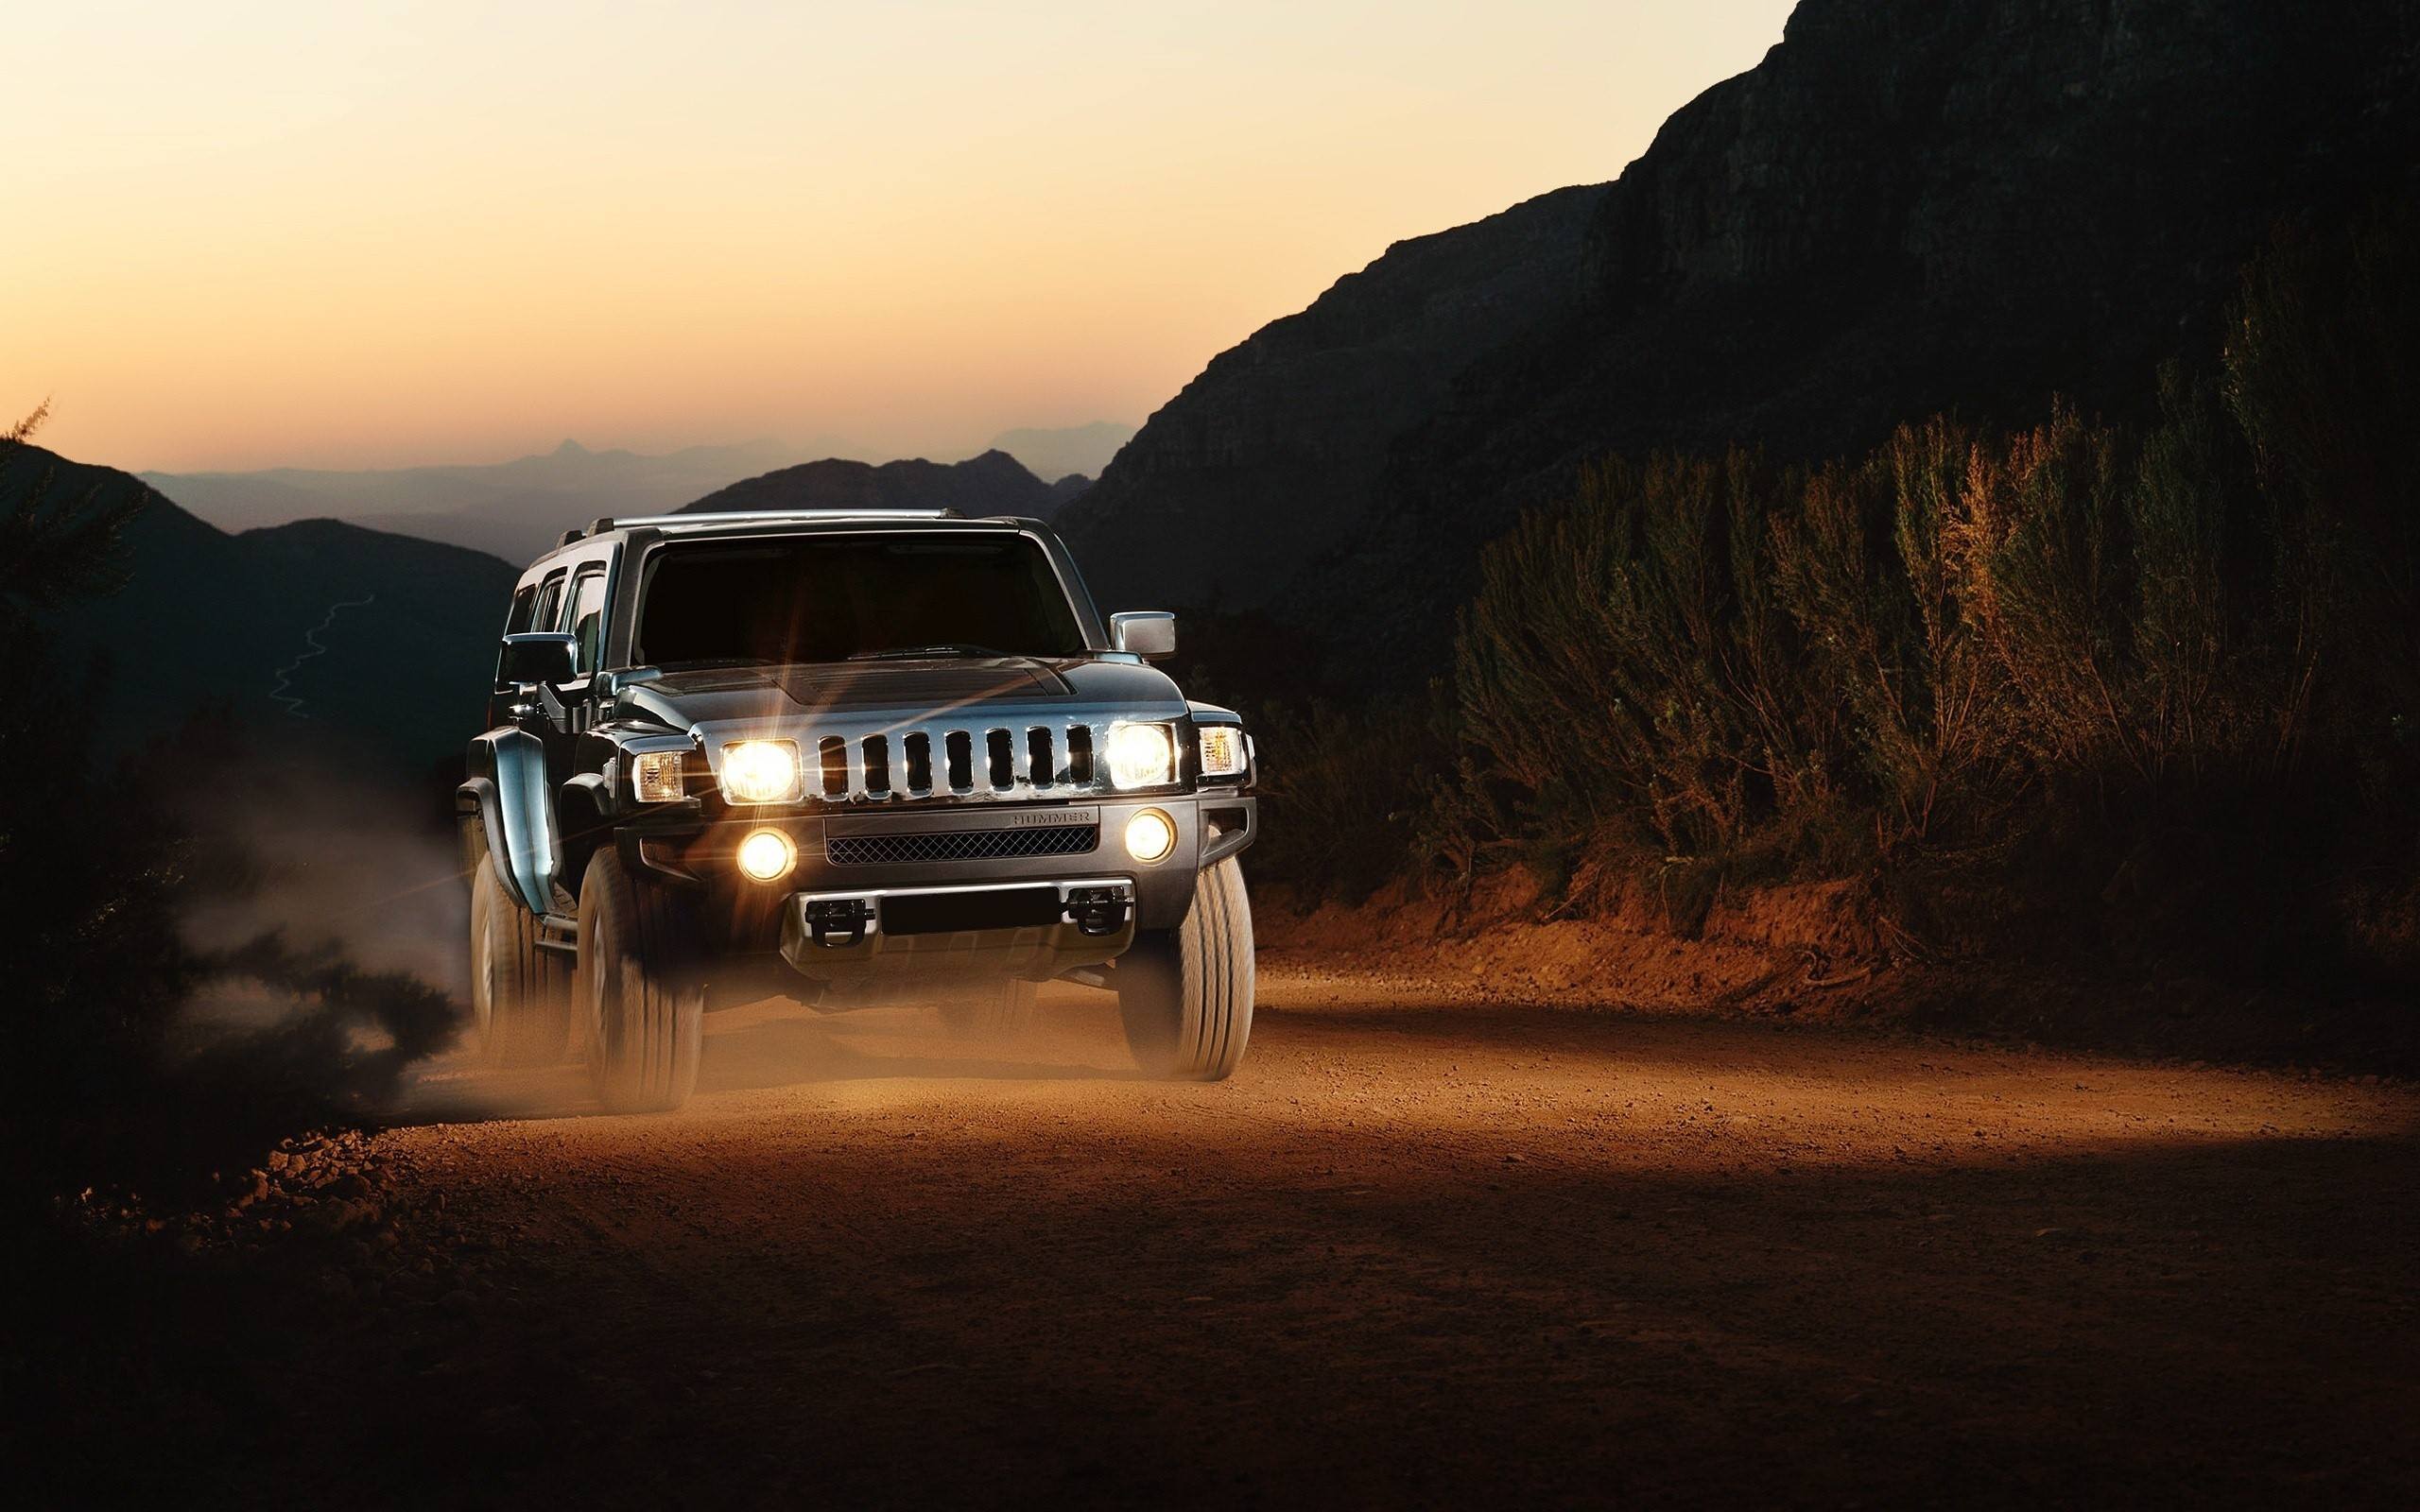 hummer wallpaper background 51961